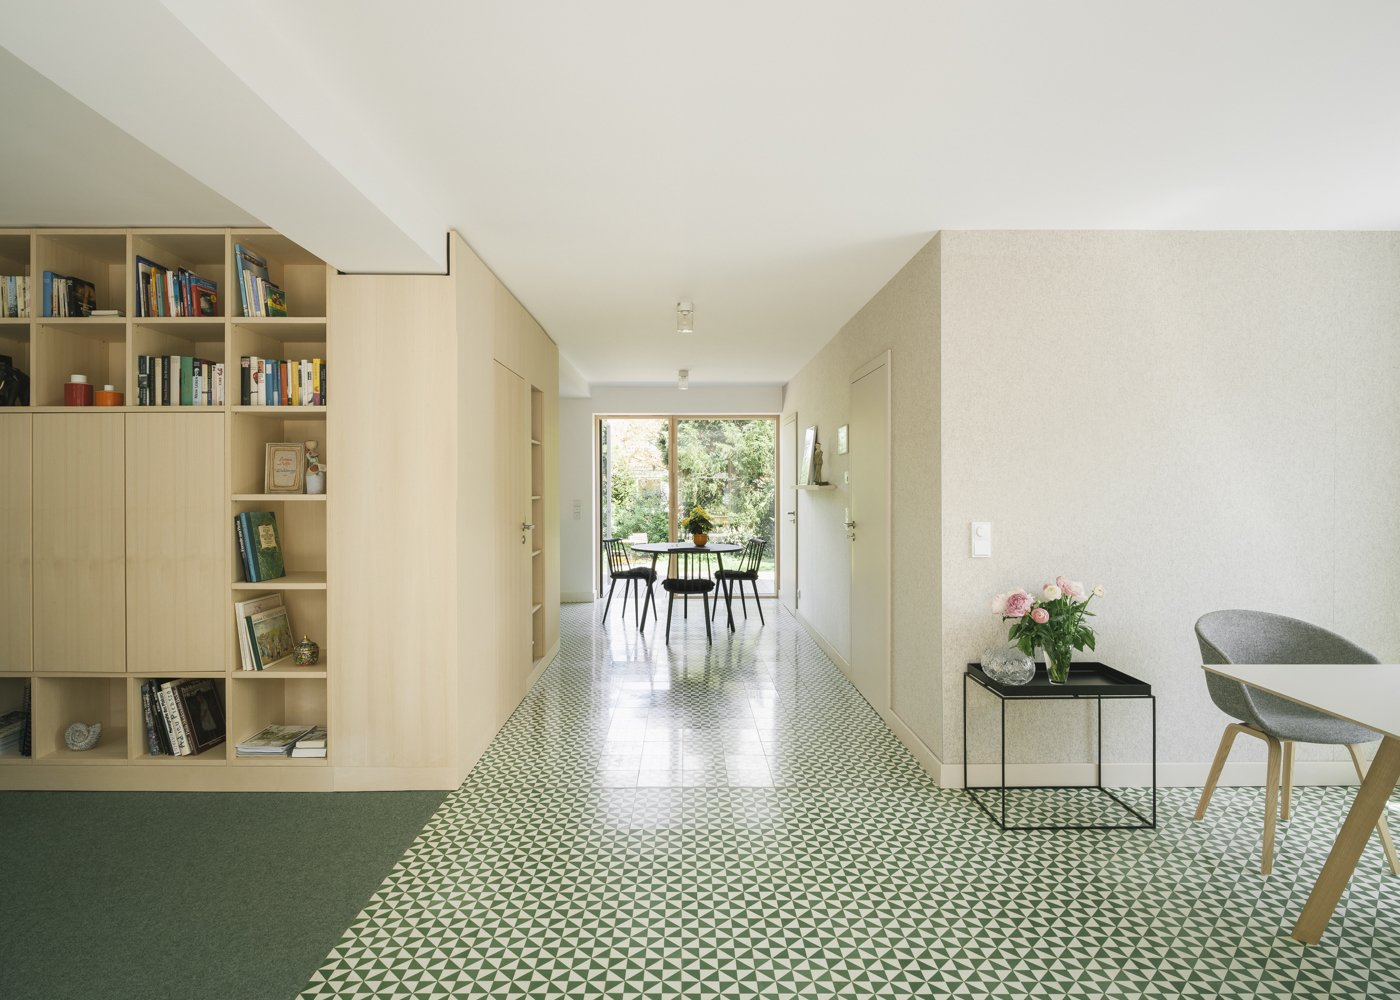 open plan living room Tagged: Cement Tile Floor, Carpet Floor, Shelves, Storage, Chair, and Dining Room. Haus Mai by Project Architecture Company